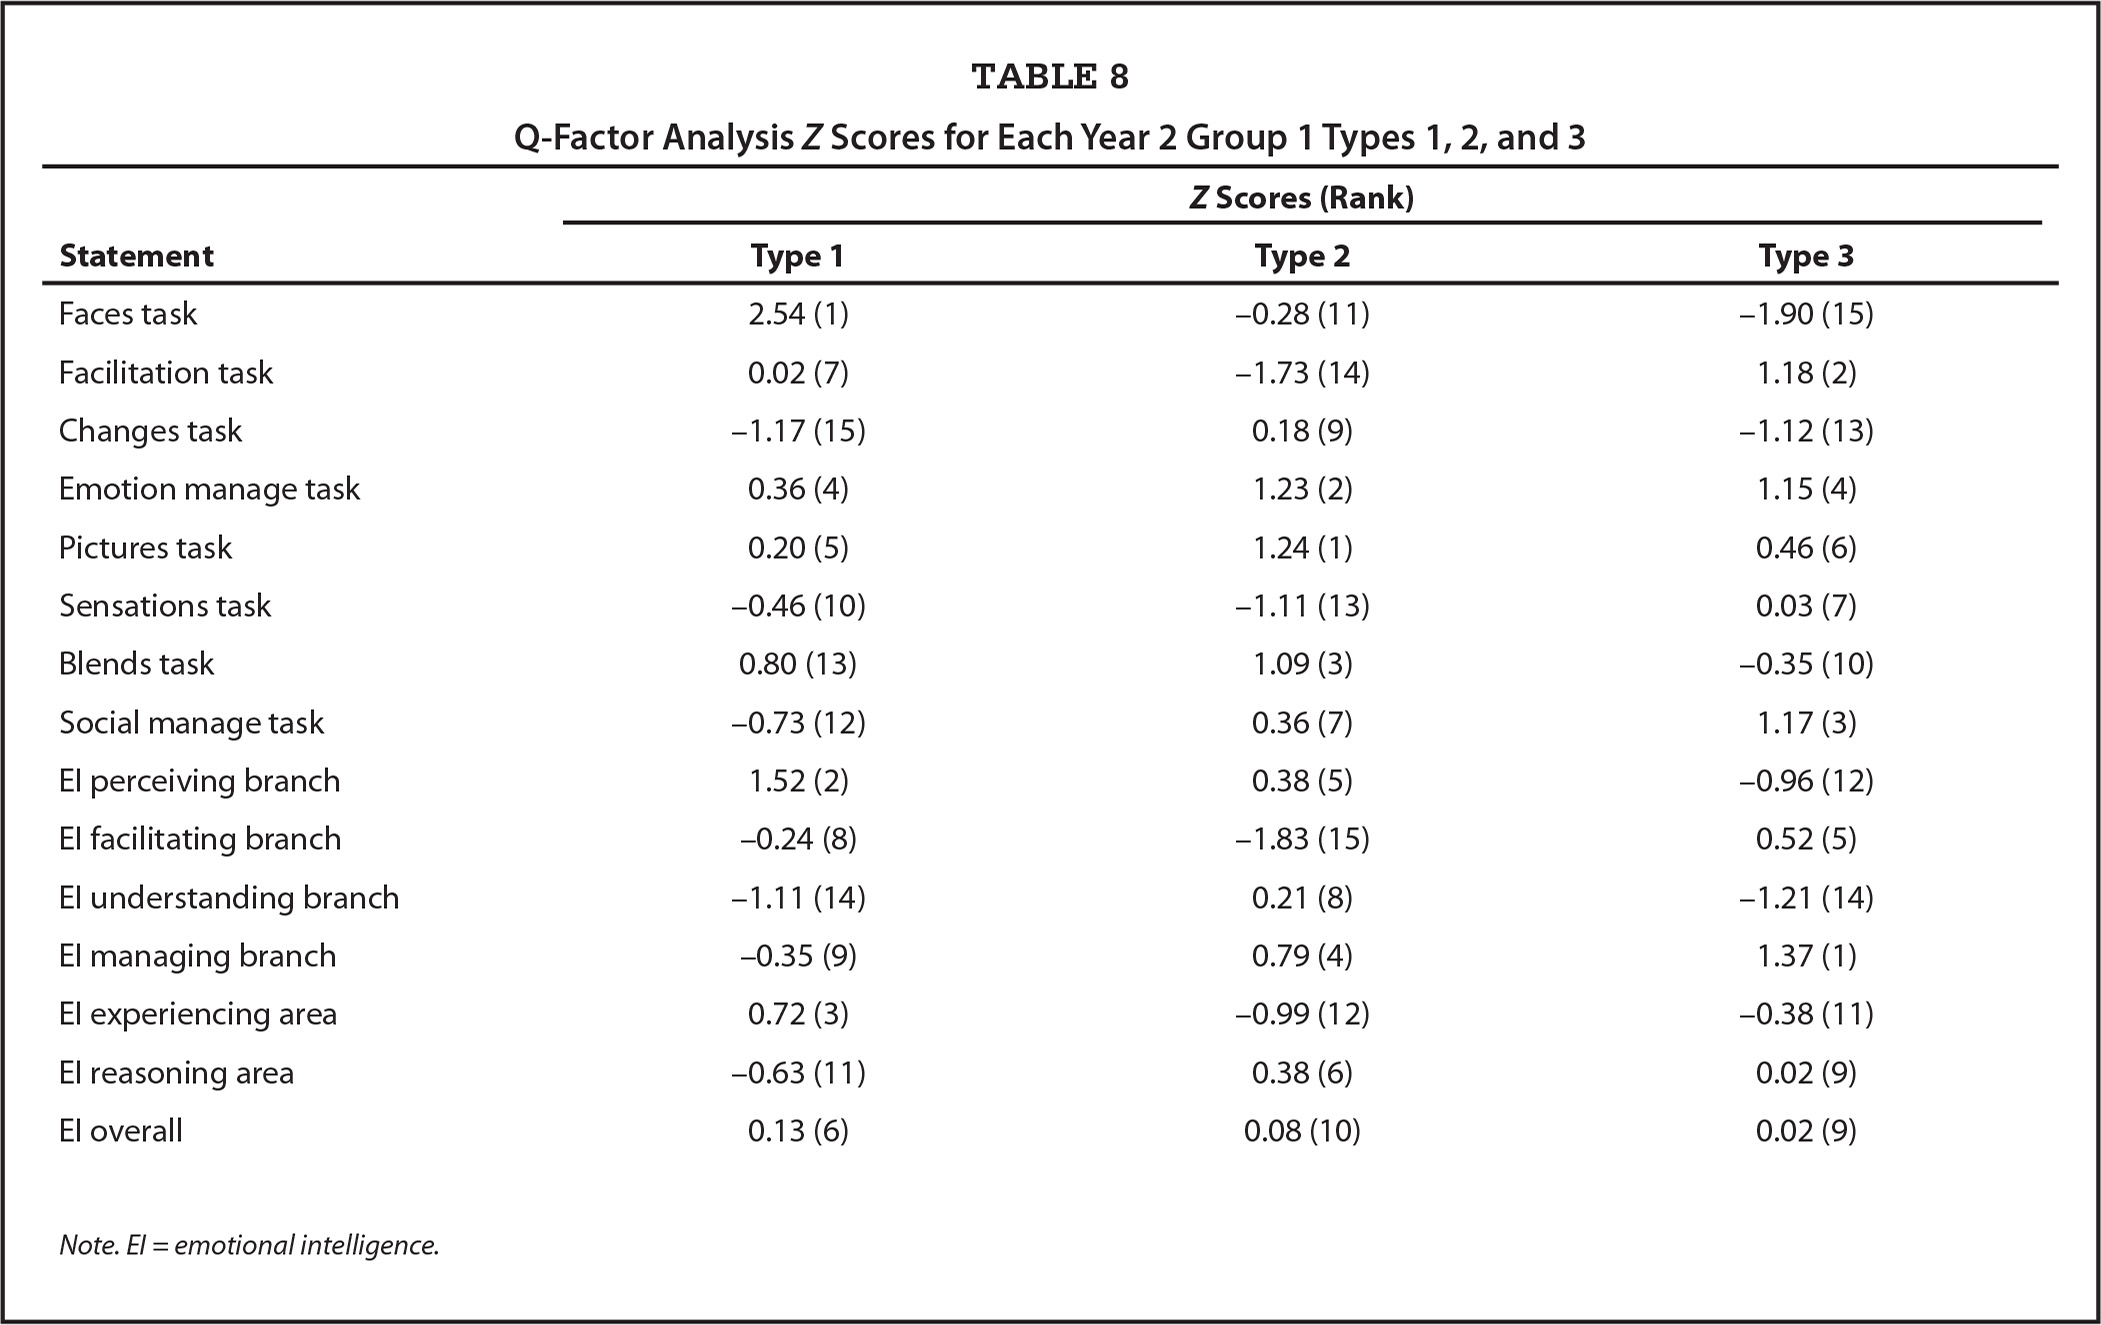 Q-Factor Analysis Z Scores for Each Year 2 Group 1 Types 1, 2, and 3